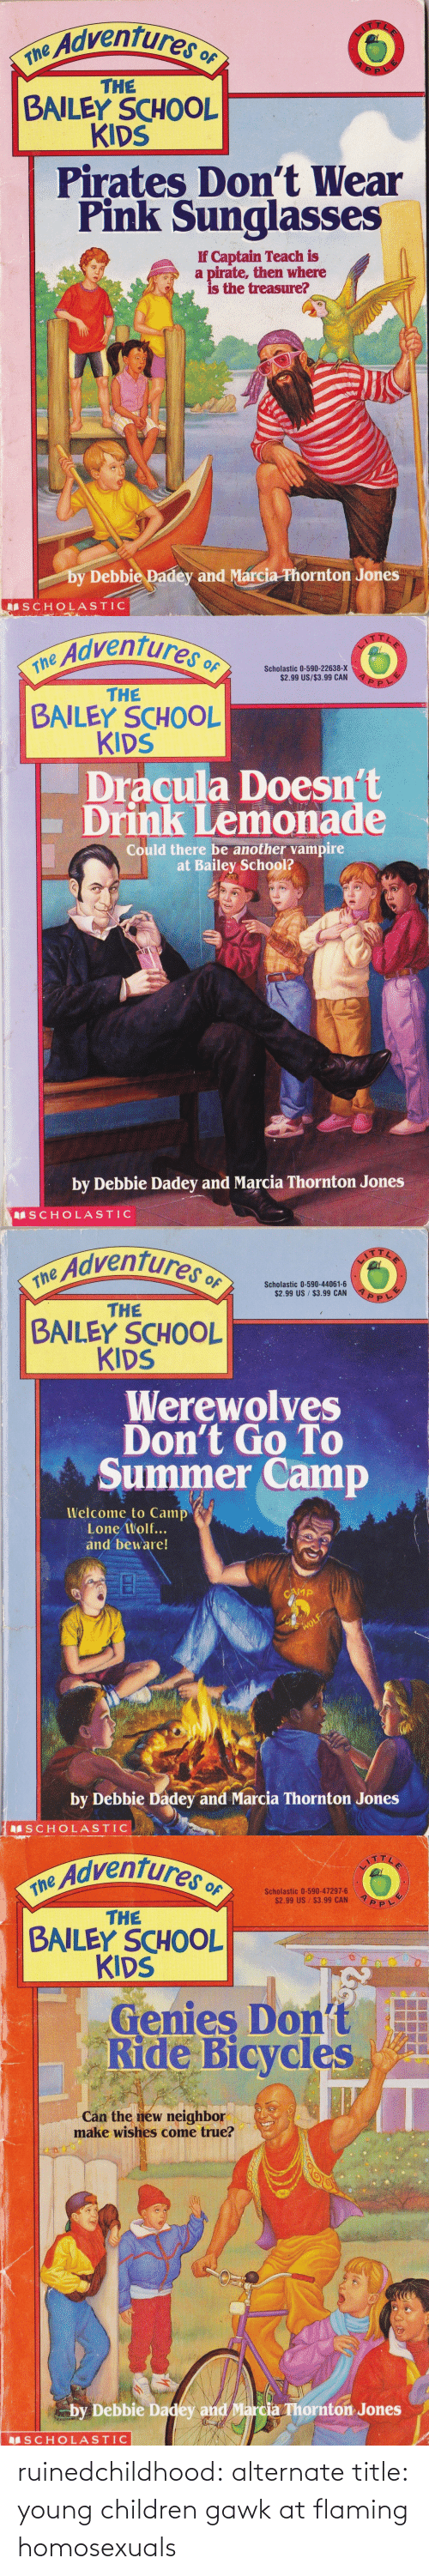 Marcia: Adventures o  ne  THE  BAILEY SCHOOL  KIDS  Pirates Don't Wear  Pink Sunglasses  If Captain Teach is  a pirate, then where  is the treasure?  by Debbie Padey and Marcia-Phornton Jones  SCHOLASTIC   Adventures  the Advent  Scholastic 0-590-22638-X  $2.99 US/$3.99 CAN  THE  BAILEY SCHOOL  KIDS  Dracula Doesn't  Drink Lemonade  Could there be another vampire  at Bailey School?  by Debbie Dadey and Marcia Thornton Jones  S CHOLASTIC   Adventures o  $2.99 US $3.99 CAN  THE  BAILEY SCHOOL  KIDS  Werewolves  Don't Go To  Summer Camp  Welcome to Camp  Lone Wolf...  and beware!  by Debbie Dadey and Marcia Thornton Jones  S CHOLASTIC   e Adventures  Scholastic 0-590-47297-6  $2.99 US $3.99 CAN  THE  BAILEY SCHOOL  KIDS  Genies Dont  Ride Bicycles  Cán the new neighbor  make wishes come true?  by Debbie Dadey and Marcia Thornton Jones  SCHOLASTIC ruinedchildhood:   alternate title: young children gawk at flaming homosexuals